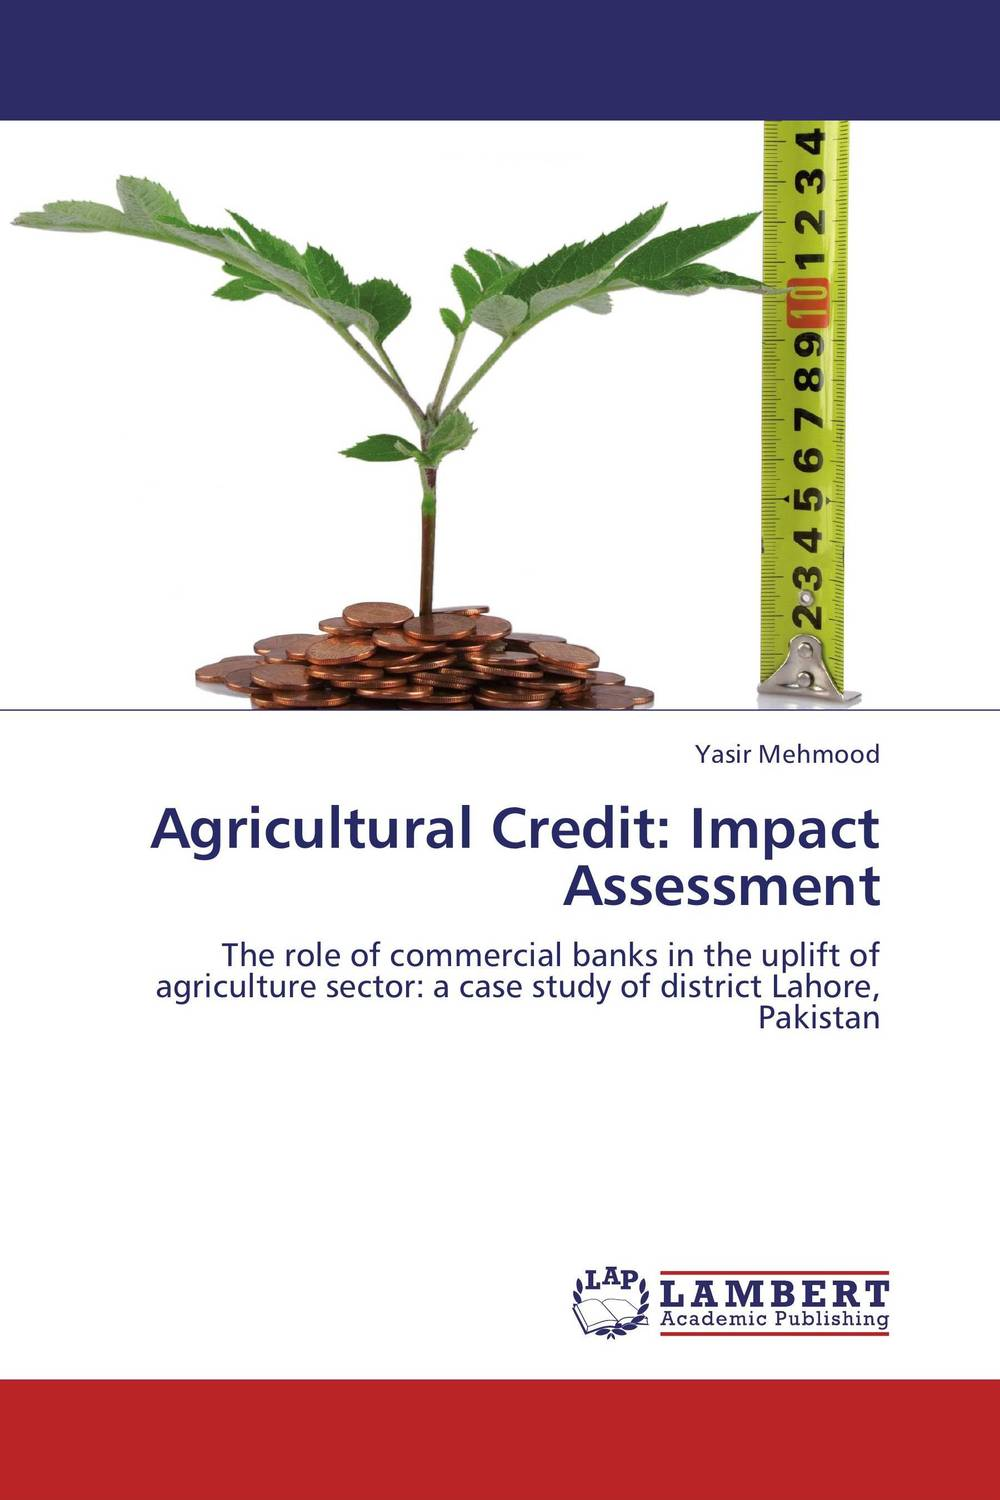 Agricultural Credit: Impact Assessment cold storage accessibility and agricultural production by smallholders